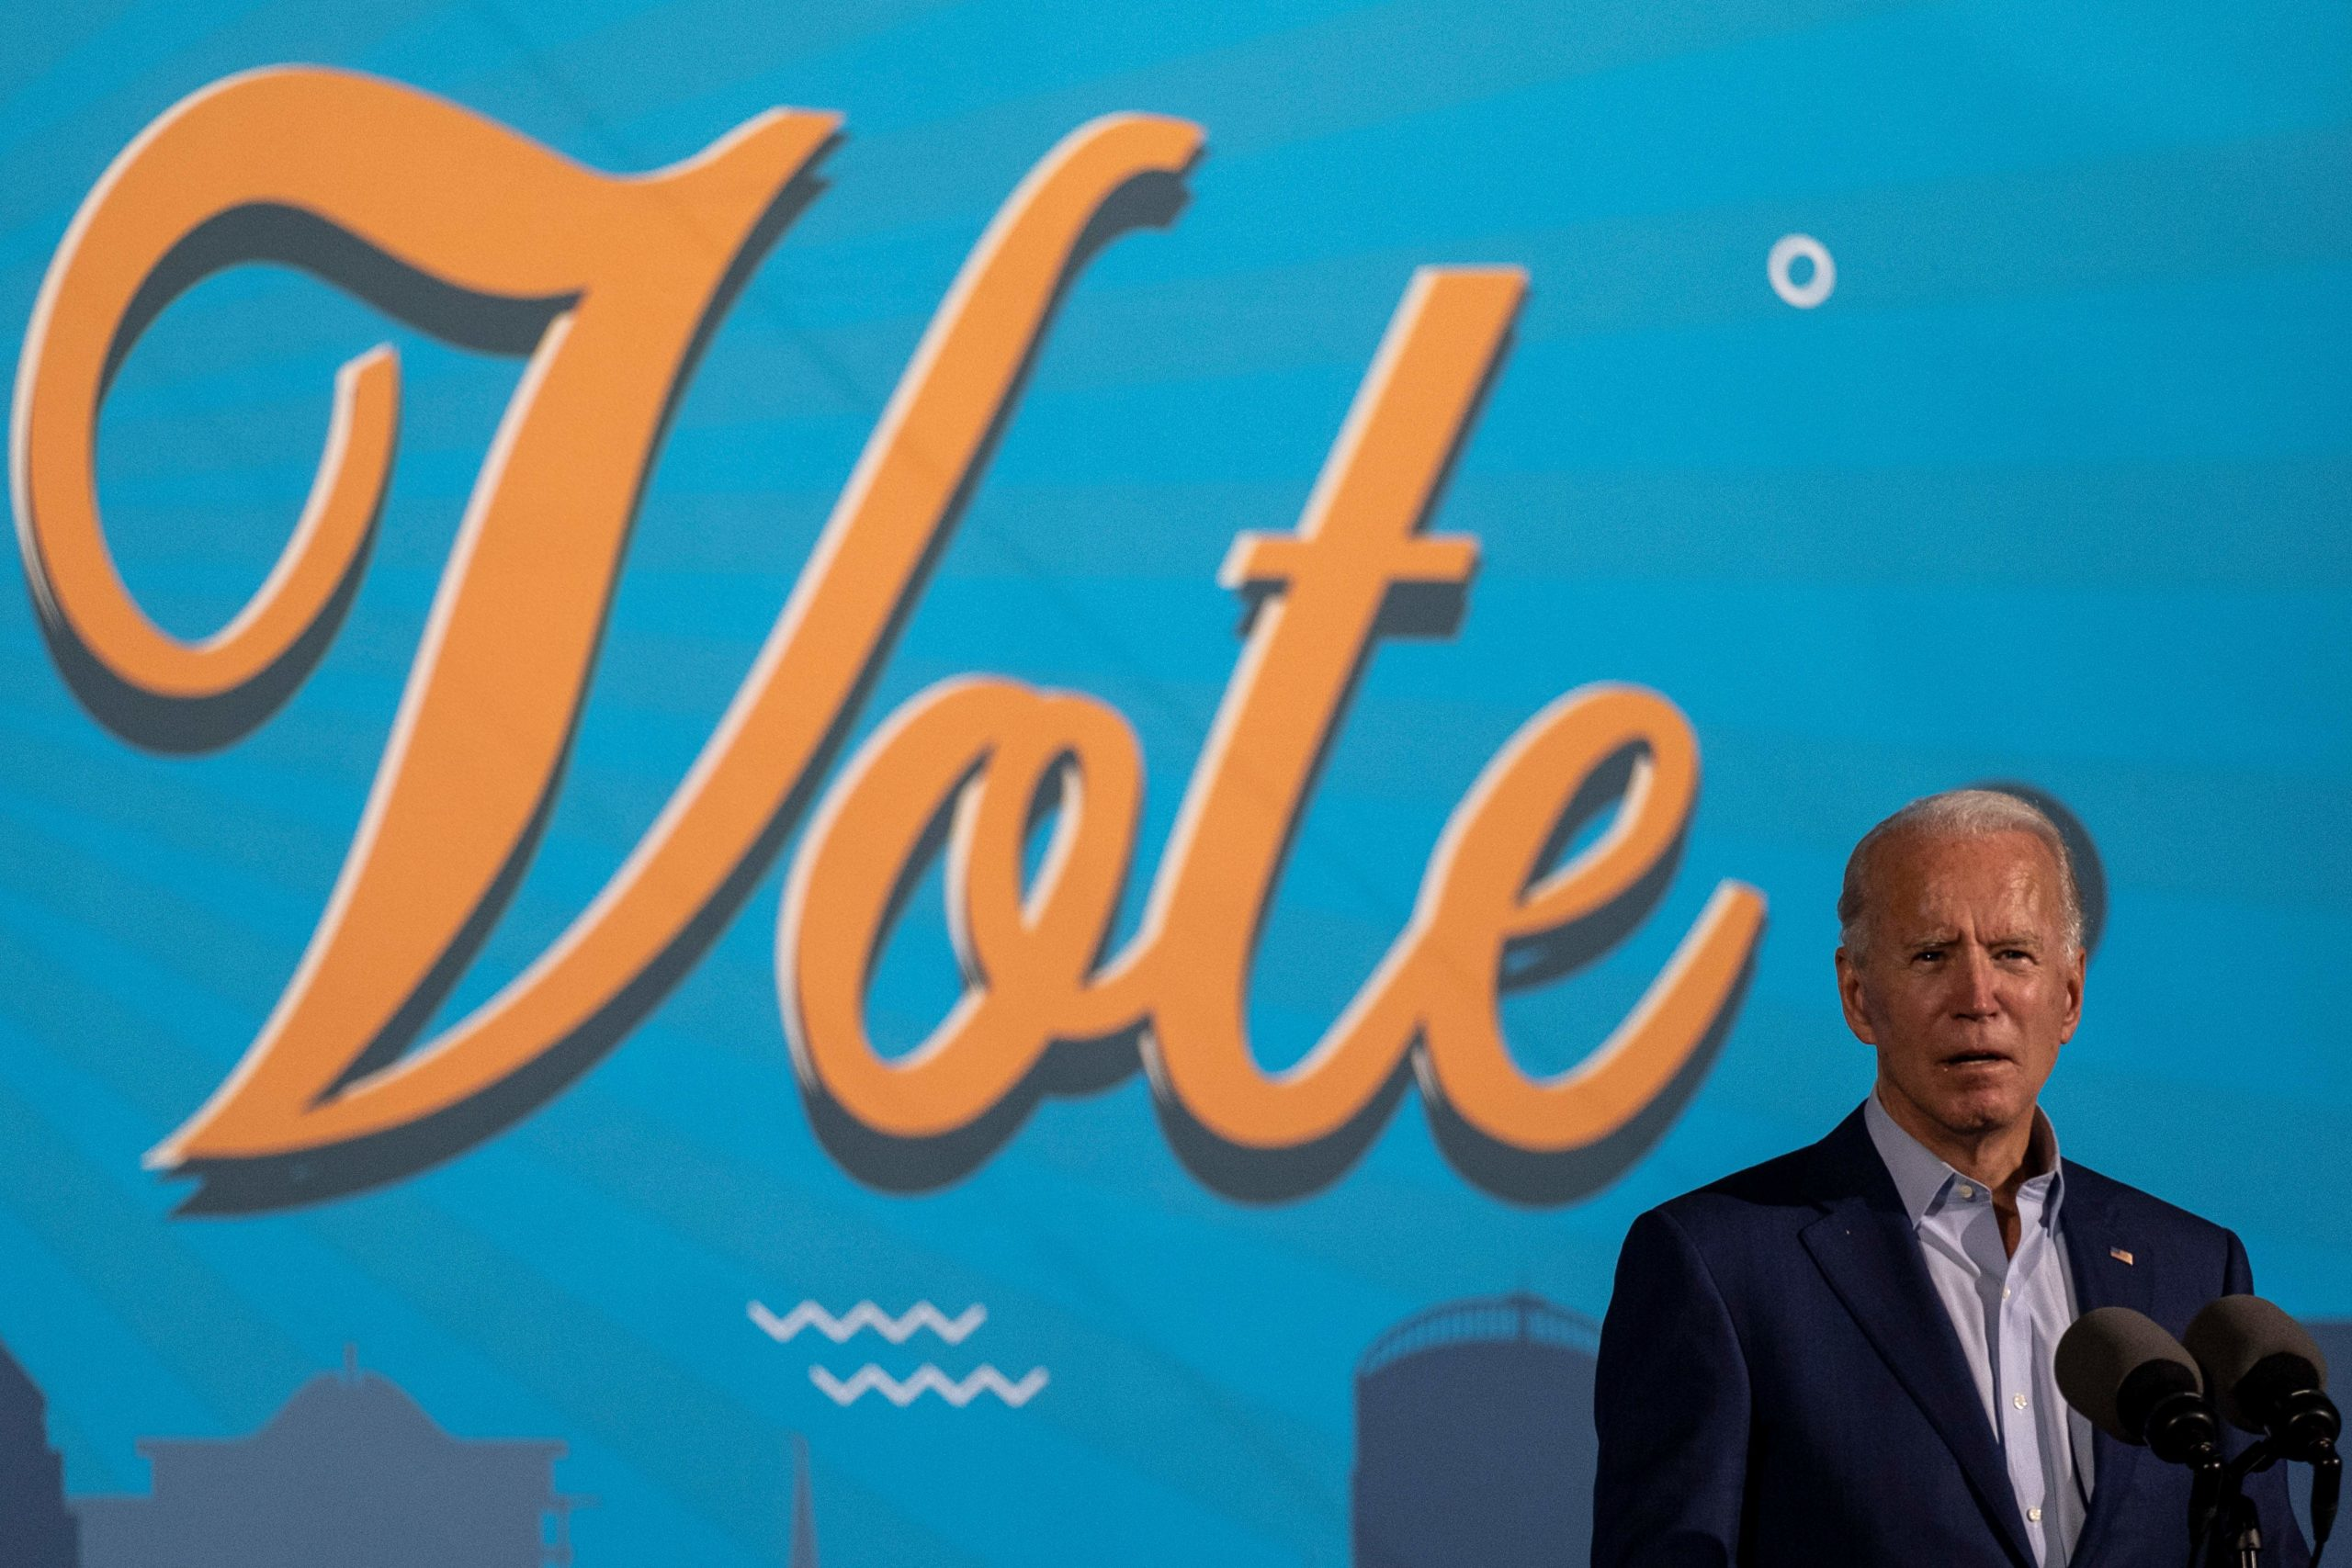 Democratic presidential nominee Joe Biden delivers remarks during an event in Tampa, Florida, on Oct. 29. (Ricardo Arduengo/AFP via Getty Images)